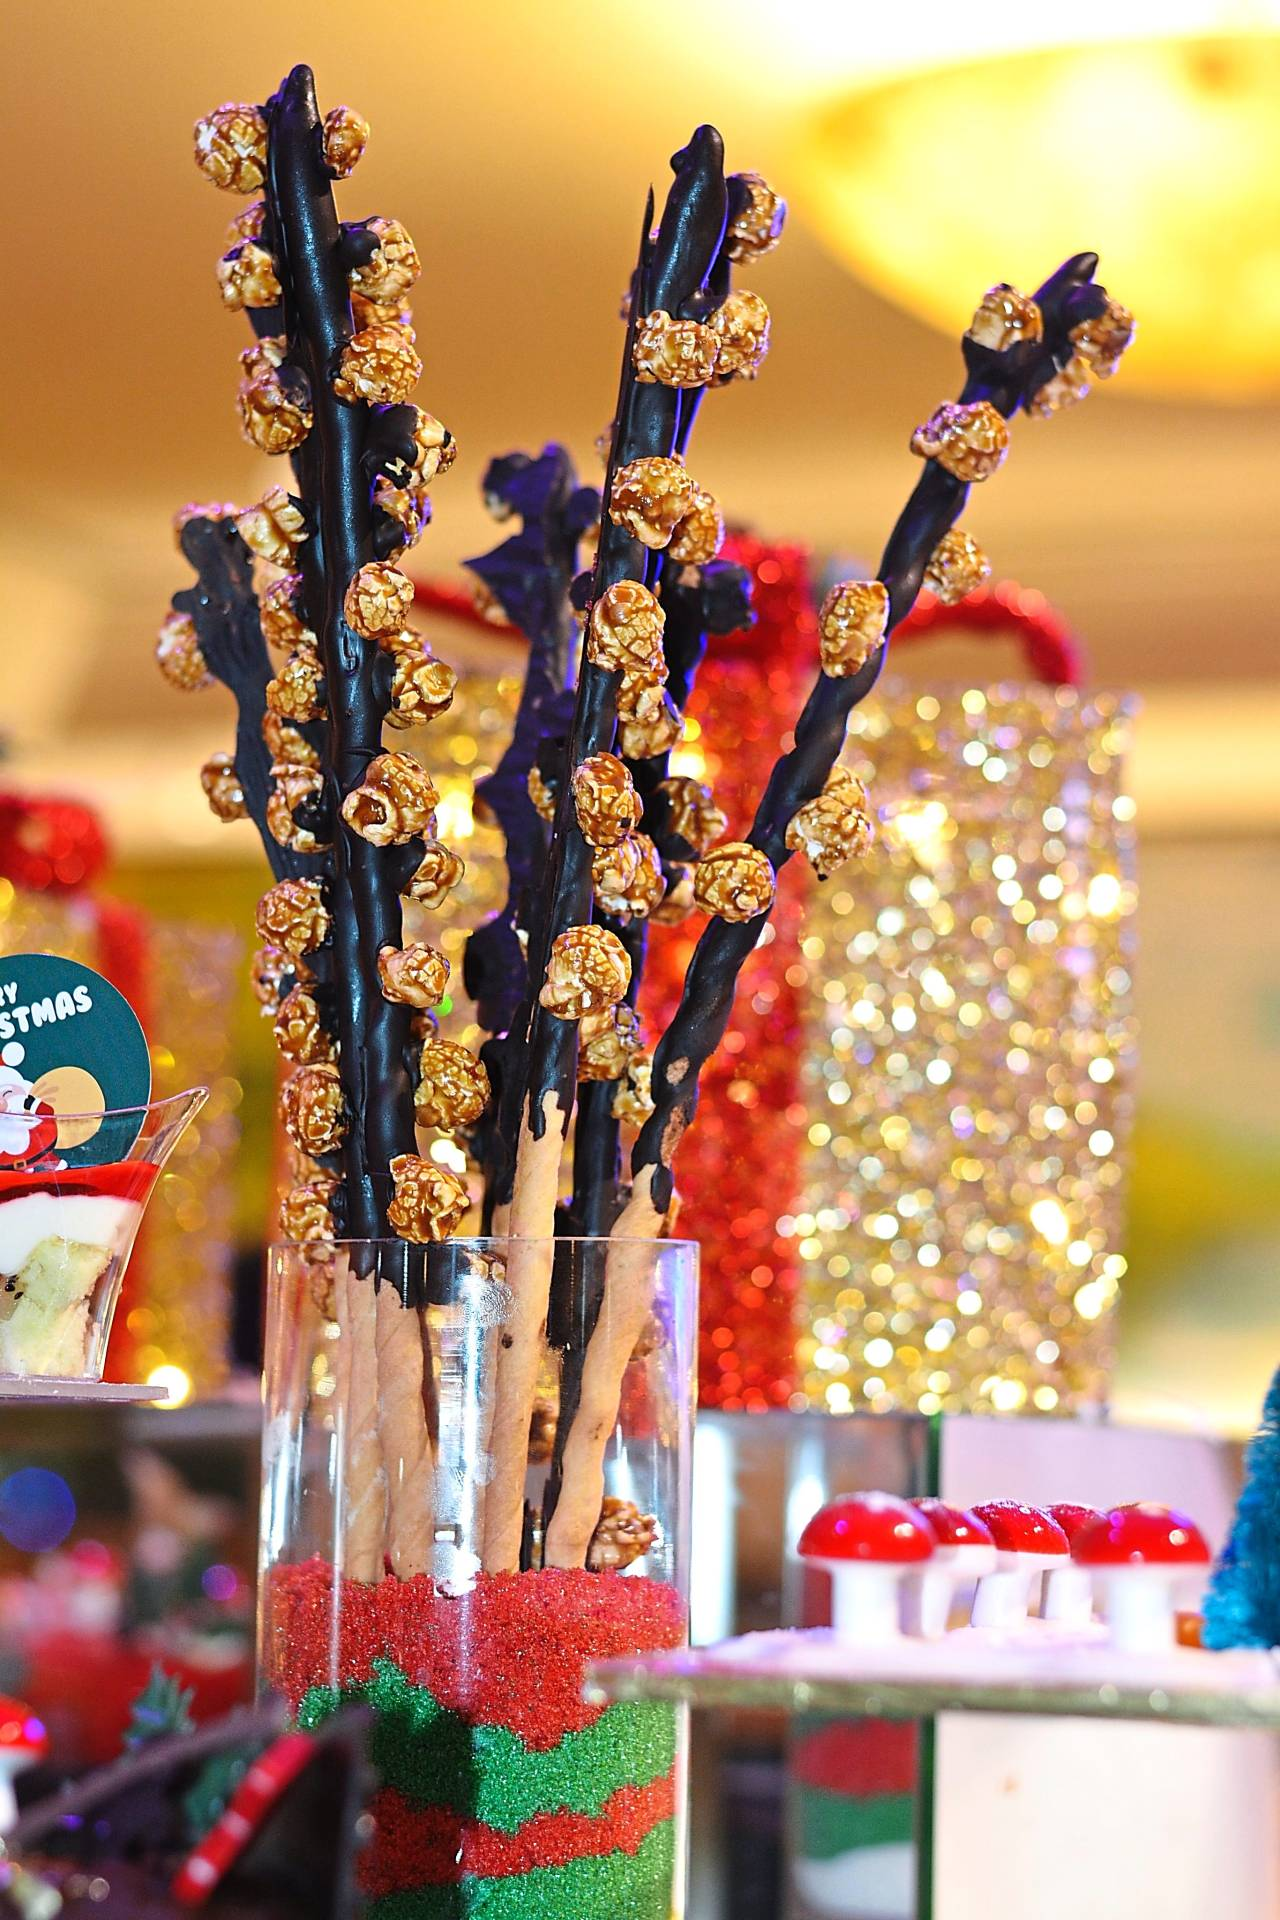 Popcorn is elevated to complement chocolate on a stick at the Christmas Eve buffet dinner at Dondang Sayang Coffee House.